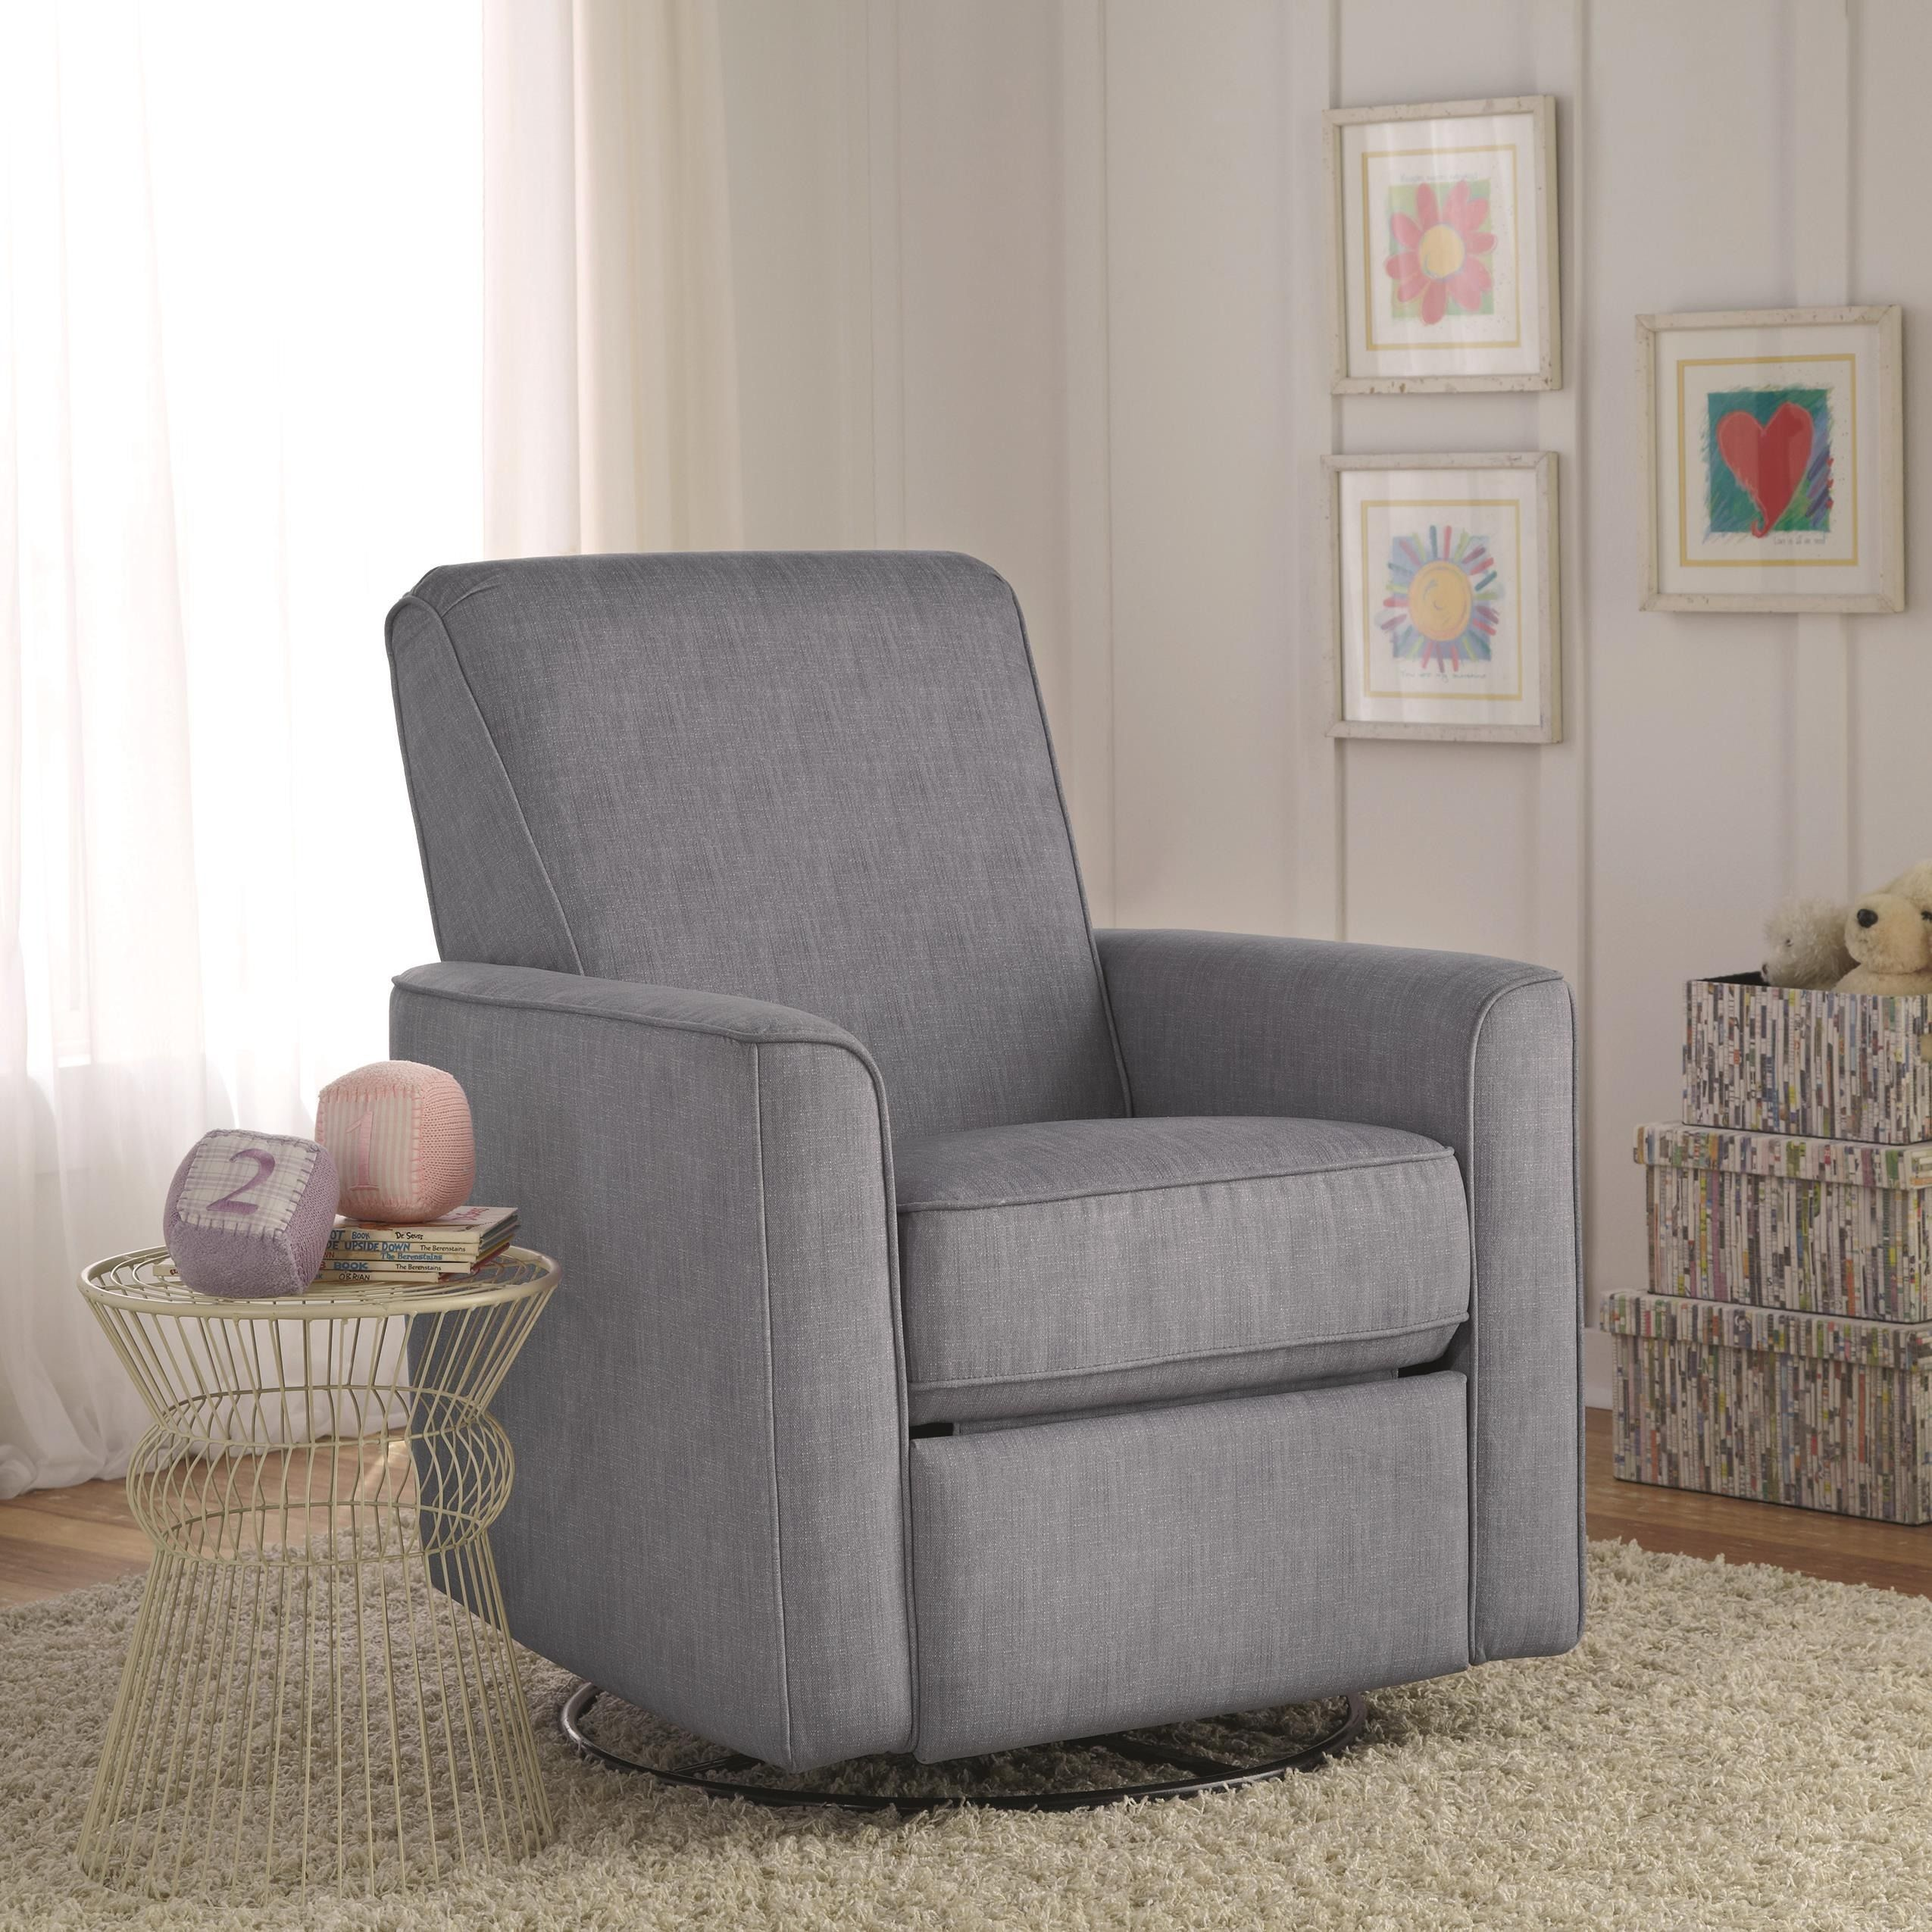 Zoey grey nursery swivel glider recliner chair is handcrafted